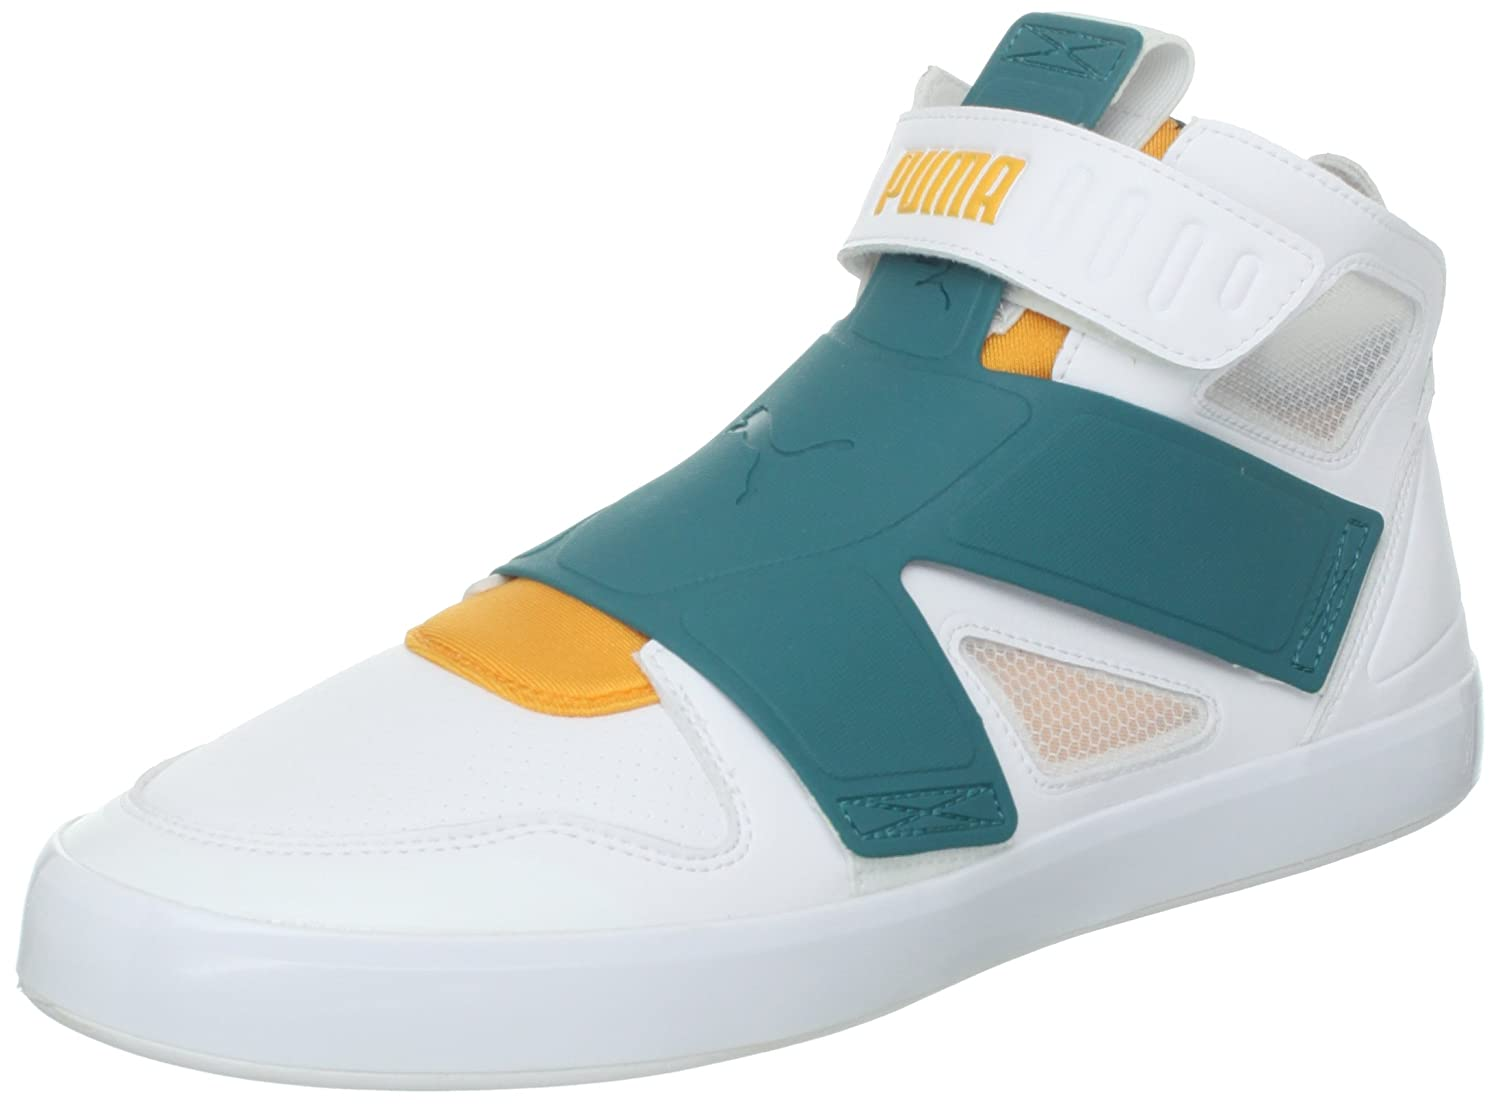 Puma El Rey Future Amazon bwR4leFdW